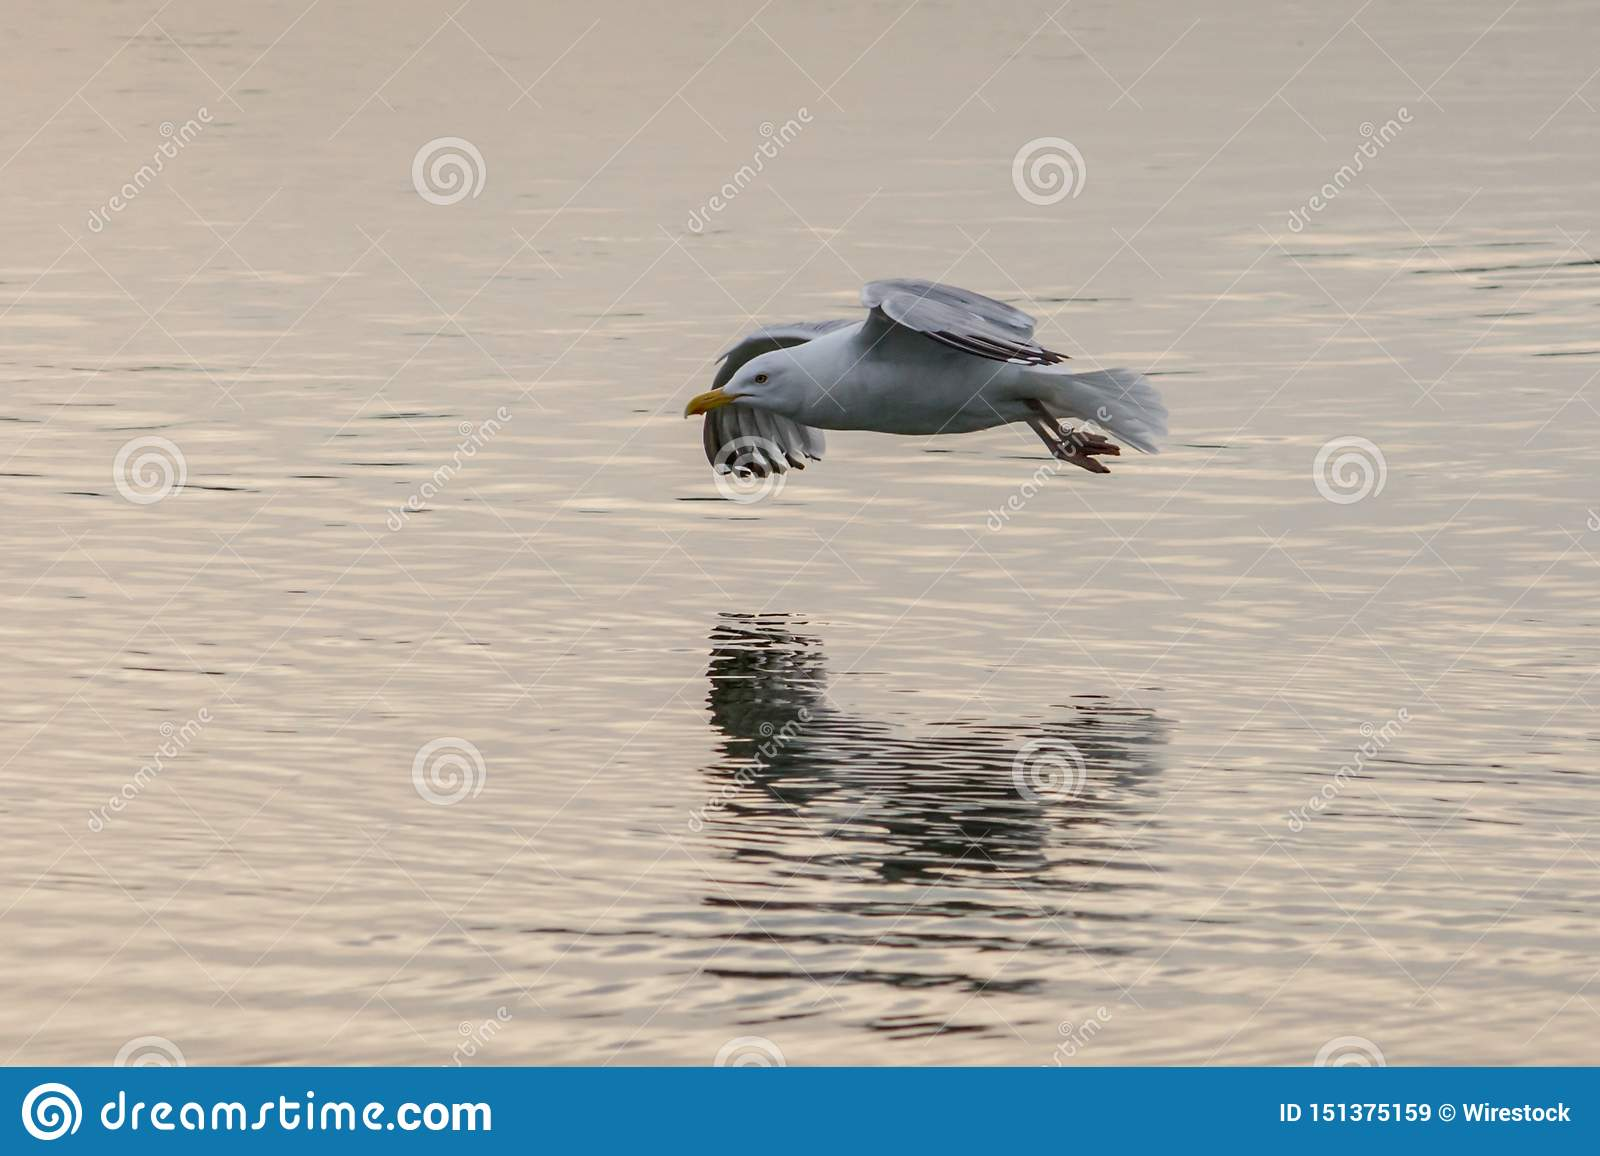 Seagull flying low over a lake with reflection in the water